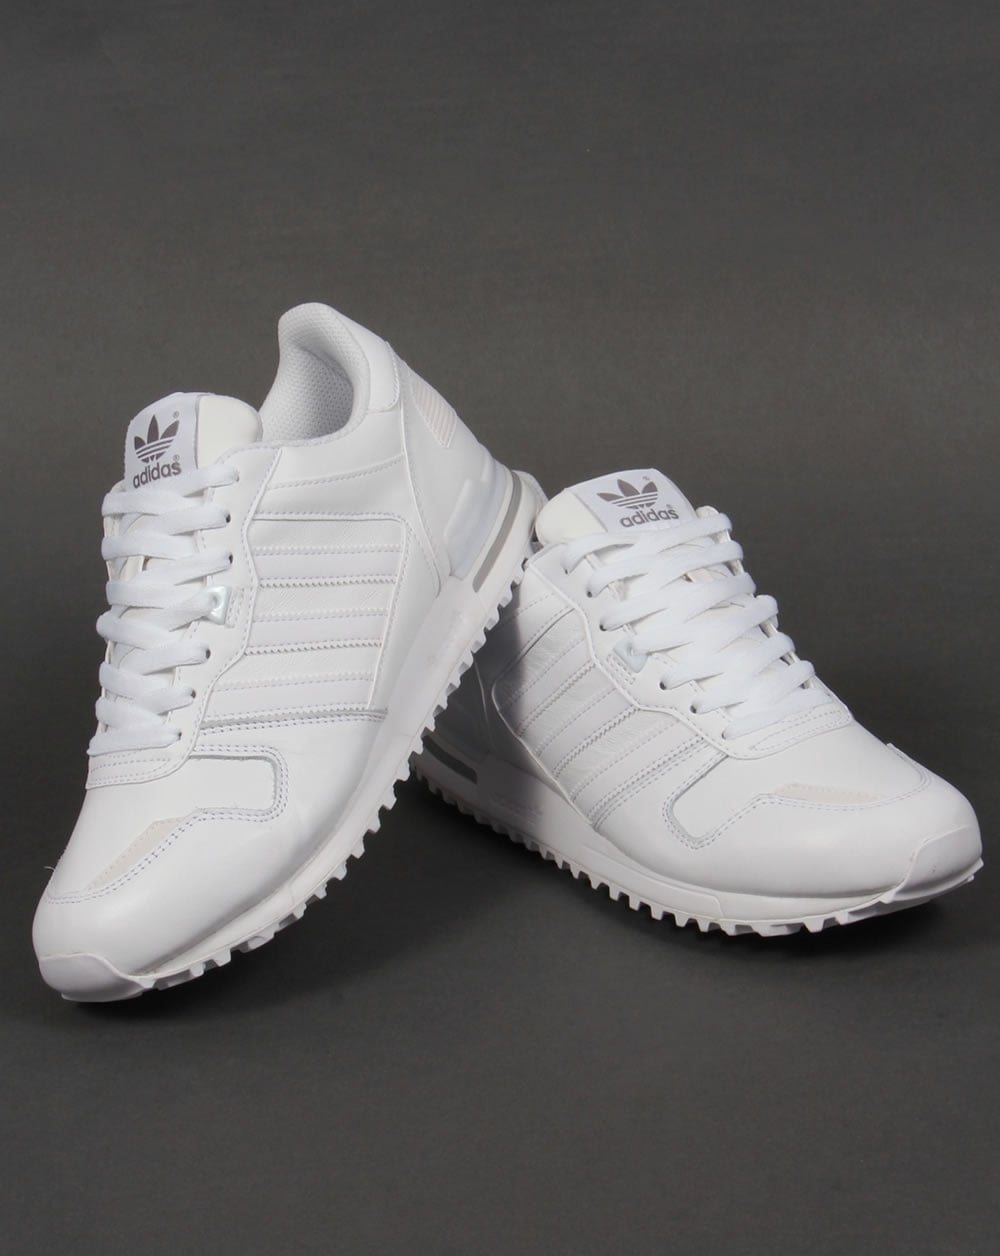 Adidas ZX 700 Leather Trainers White,originals,shoes ...